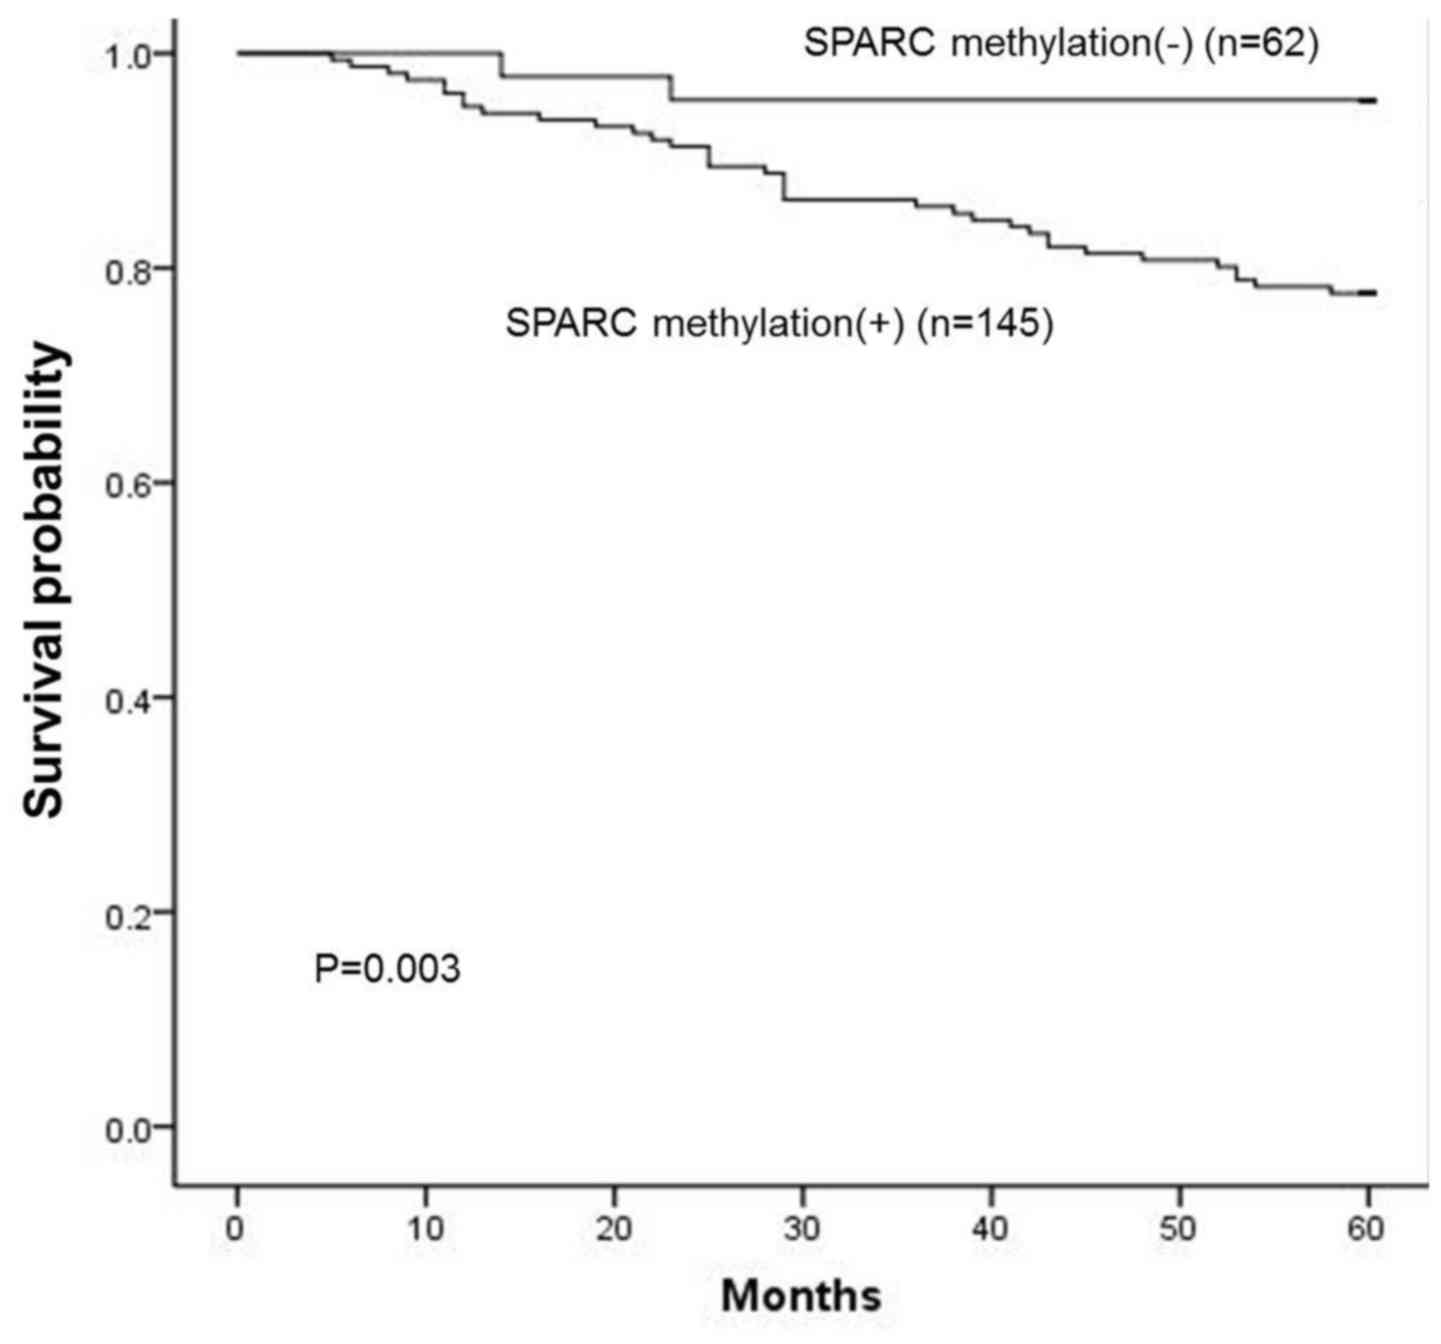 Hypermethylation of the SPARC promoter and its prognostic value for